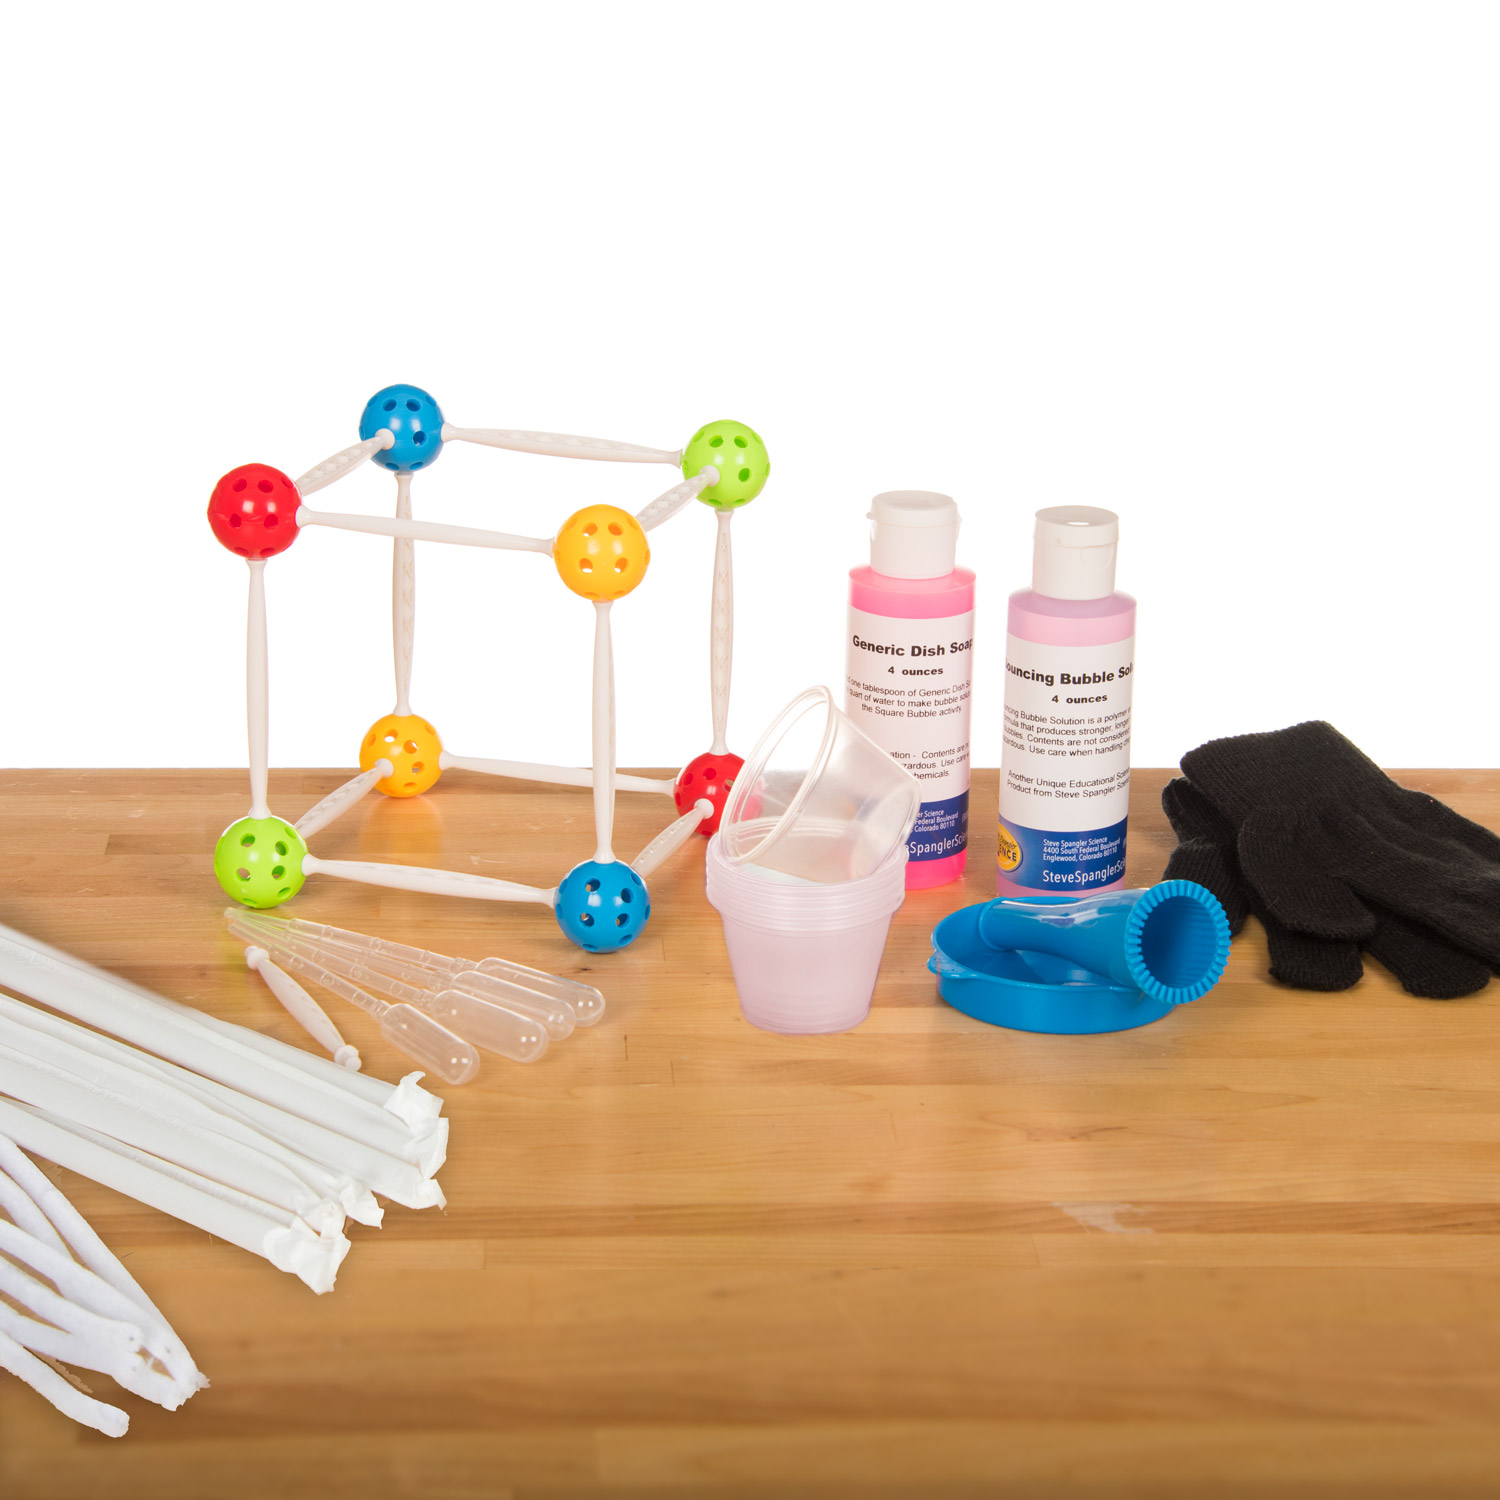 CLAB-403 - STEM Science Kit - Bubblology